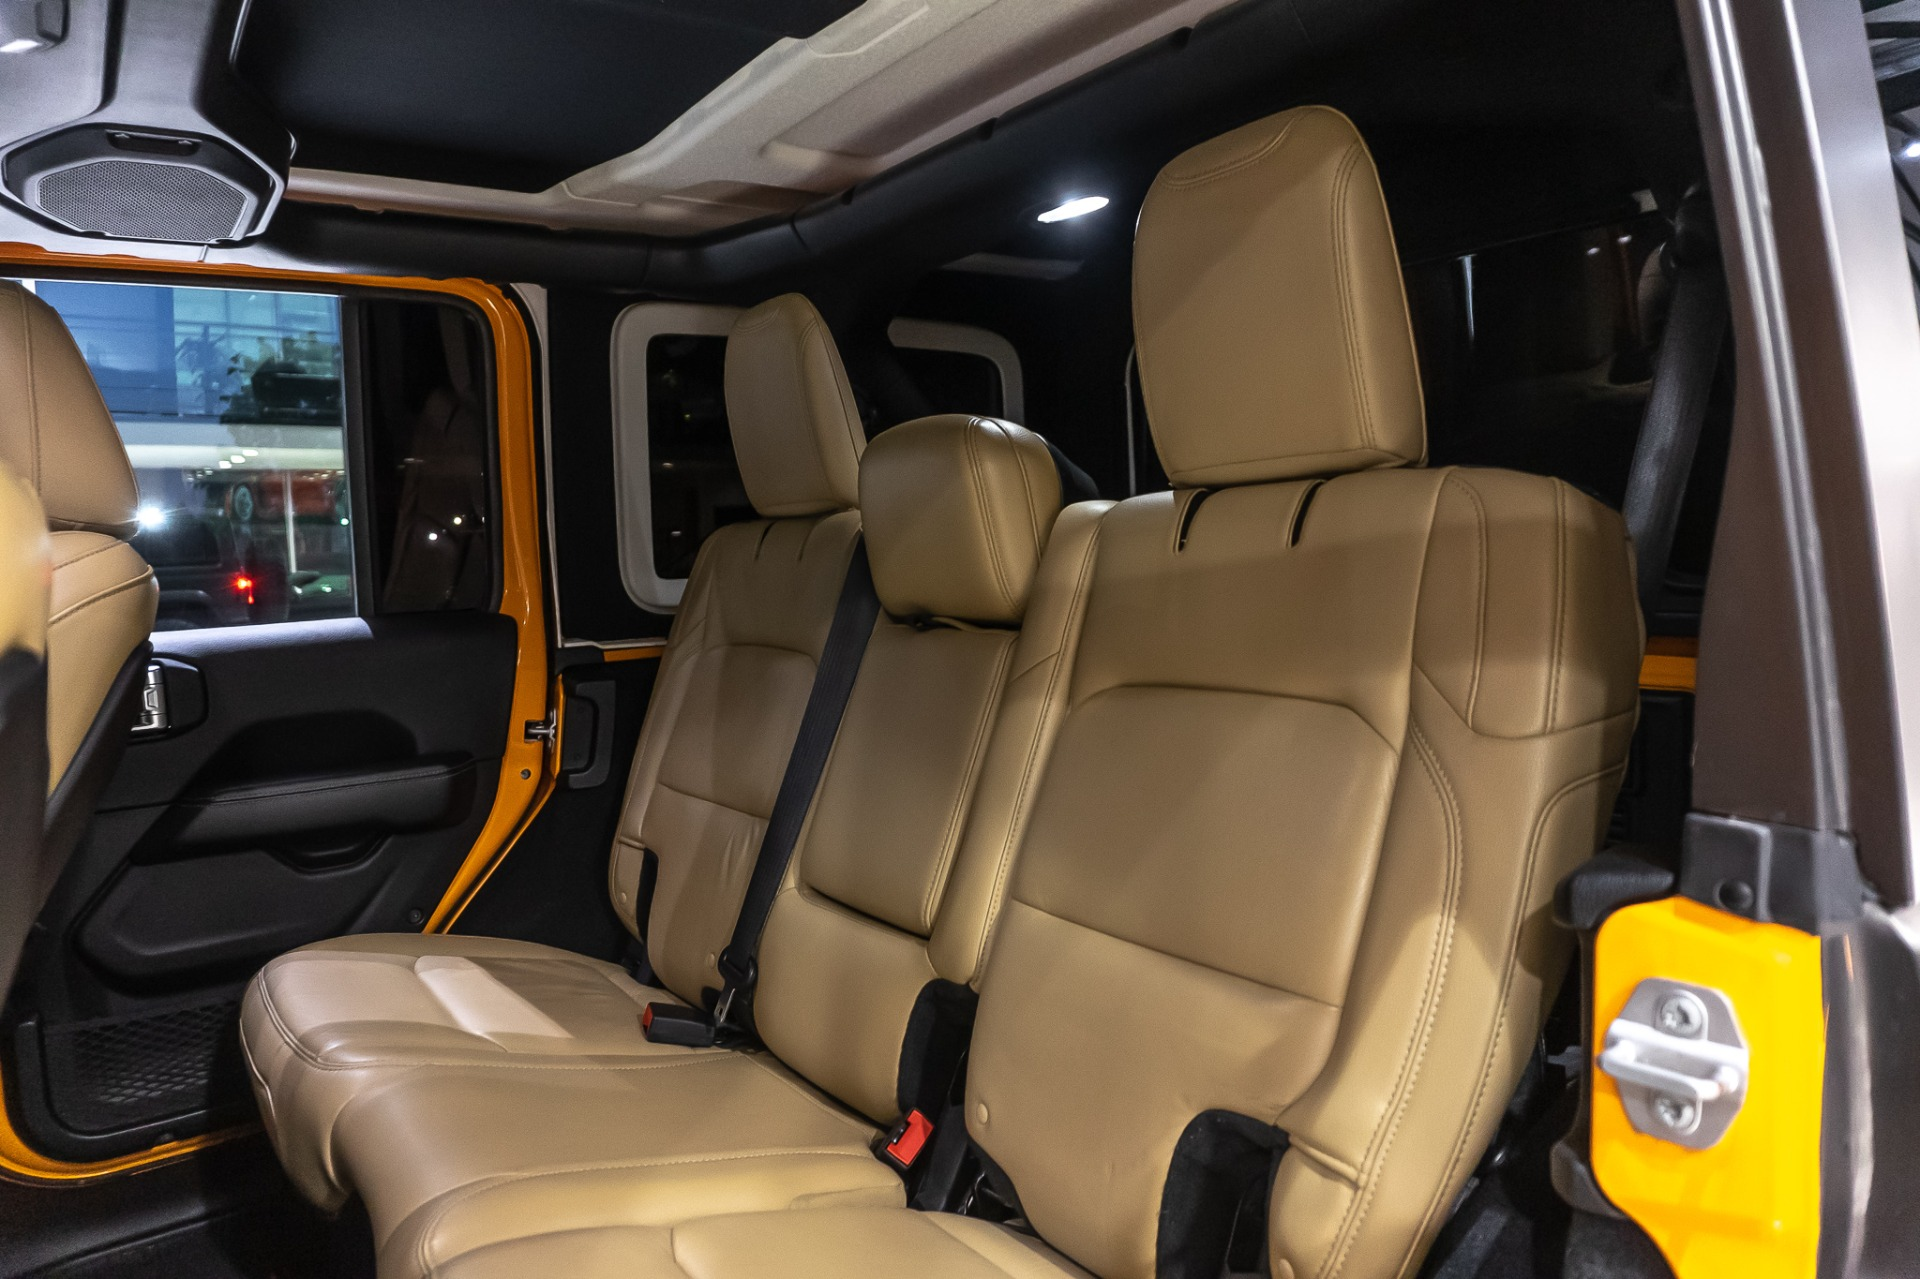 2018 Jeep Wrangler Unlimited Rubicon Jl Upgrades Loaded W Options Chicago Motor Cars Inc Official Corporate Website For Chicago Motor Cars